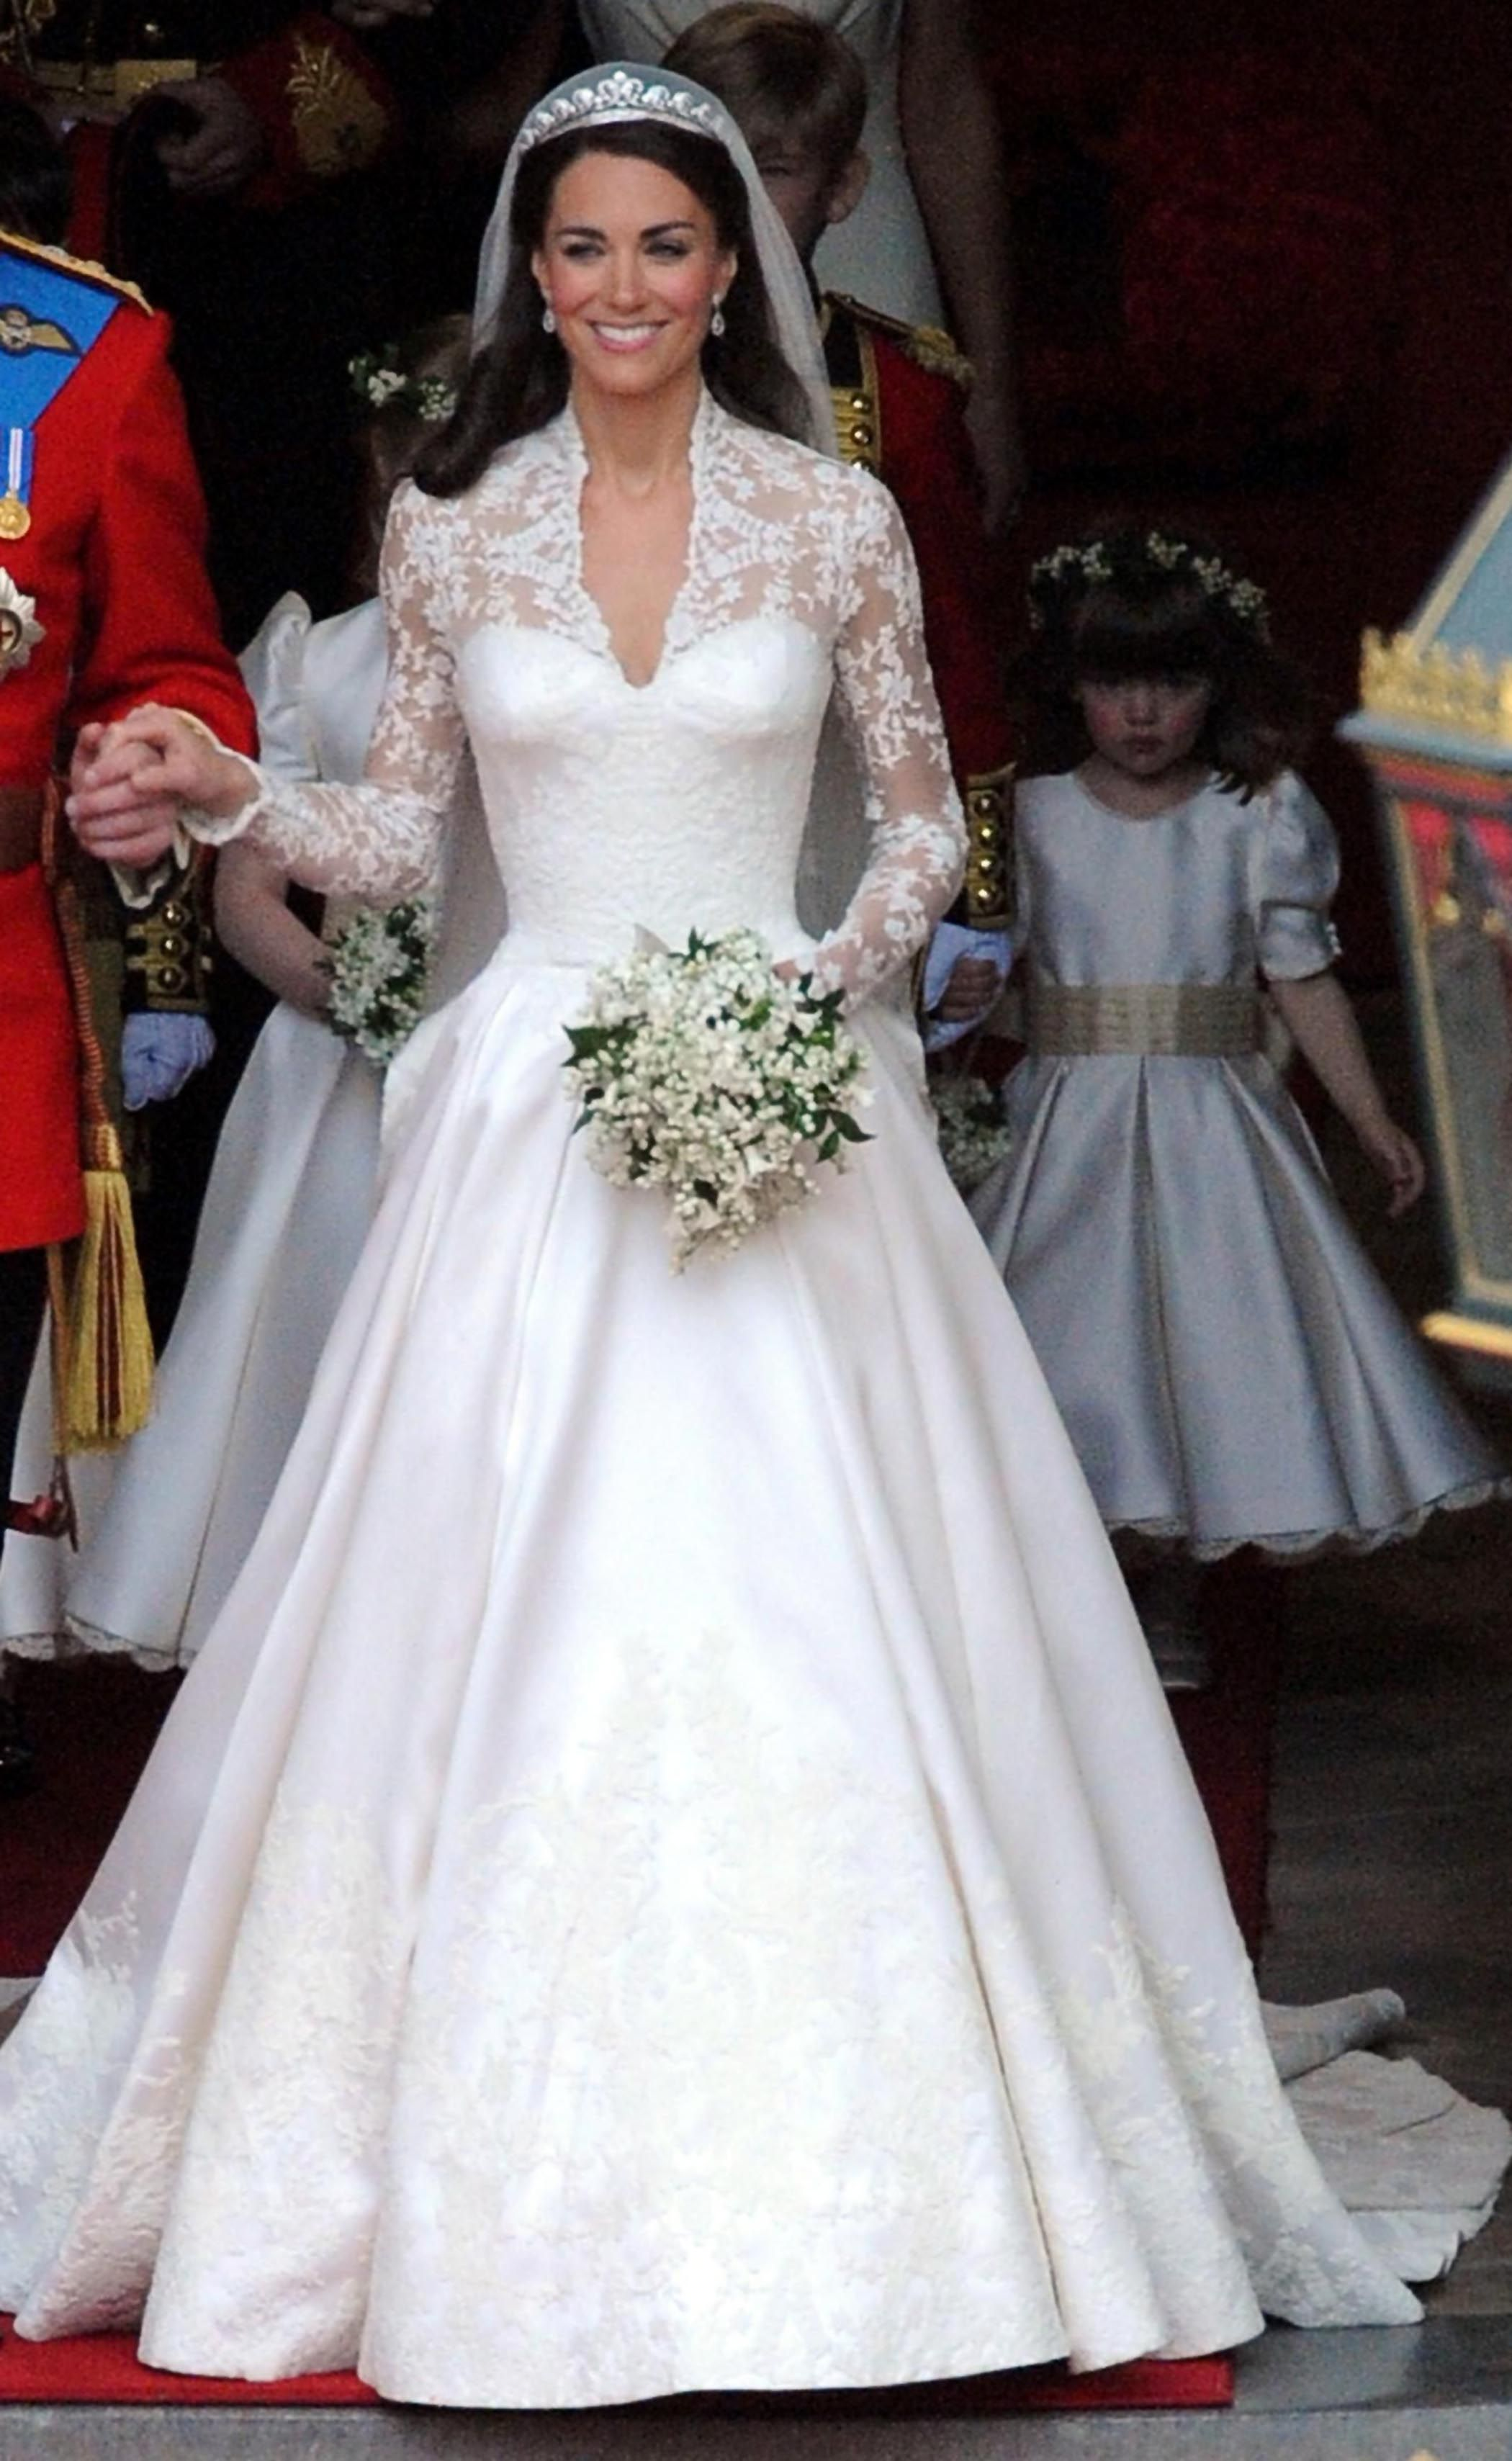 10 New Rules For Wedding Dresses | Pinterest | Kate middleton, Kate ...